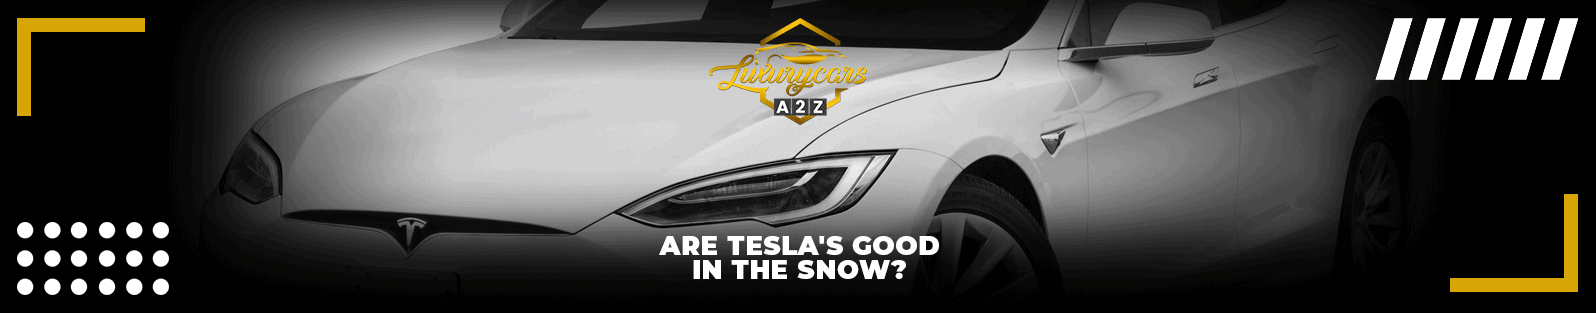 Are Tesla good in the snow?